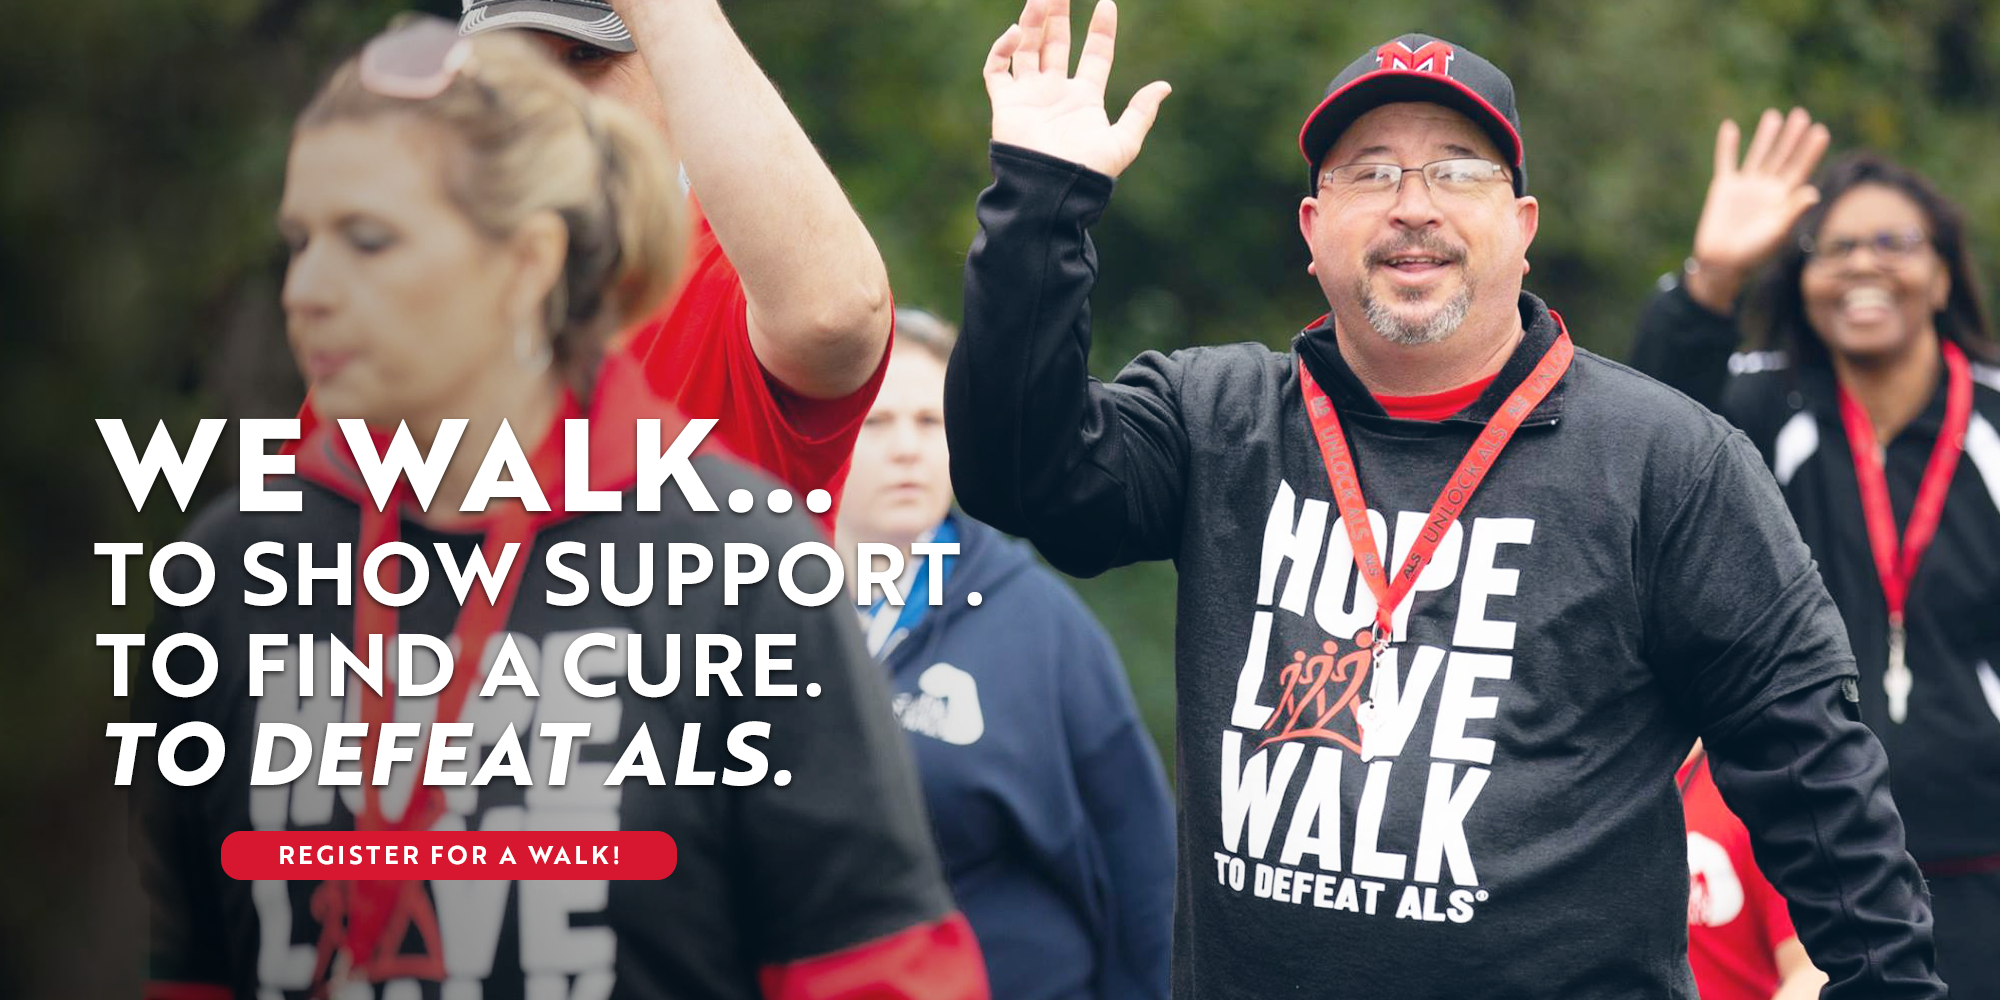 Walk to Defeat ALS.